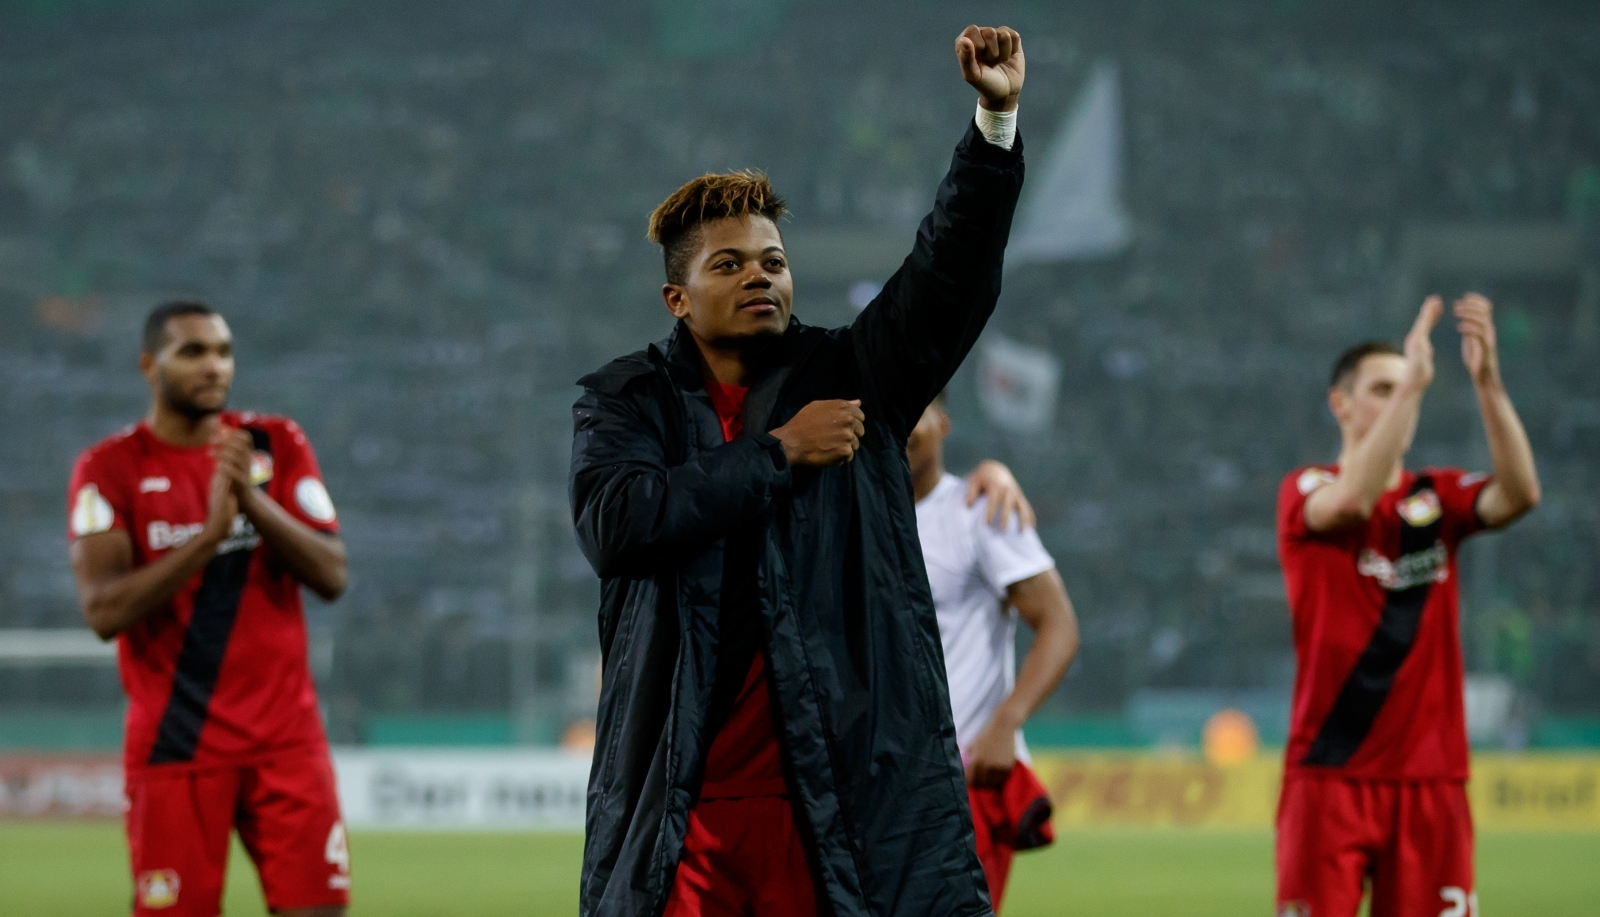 Wenger Making Moves to Sign Leon Bailey - Arsenal Favorites